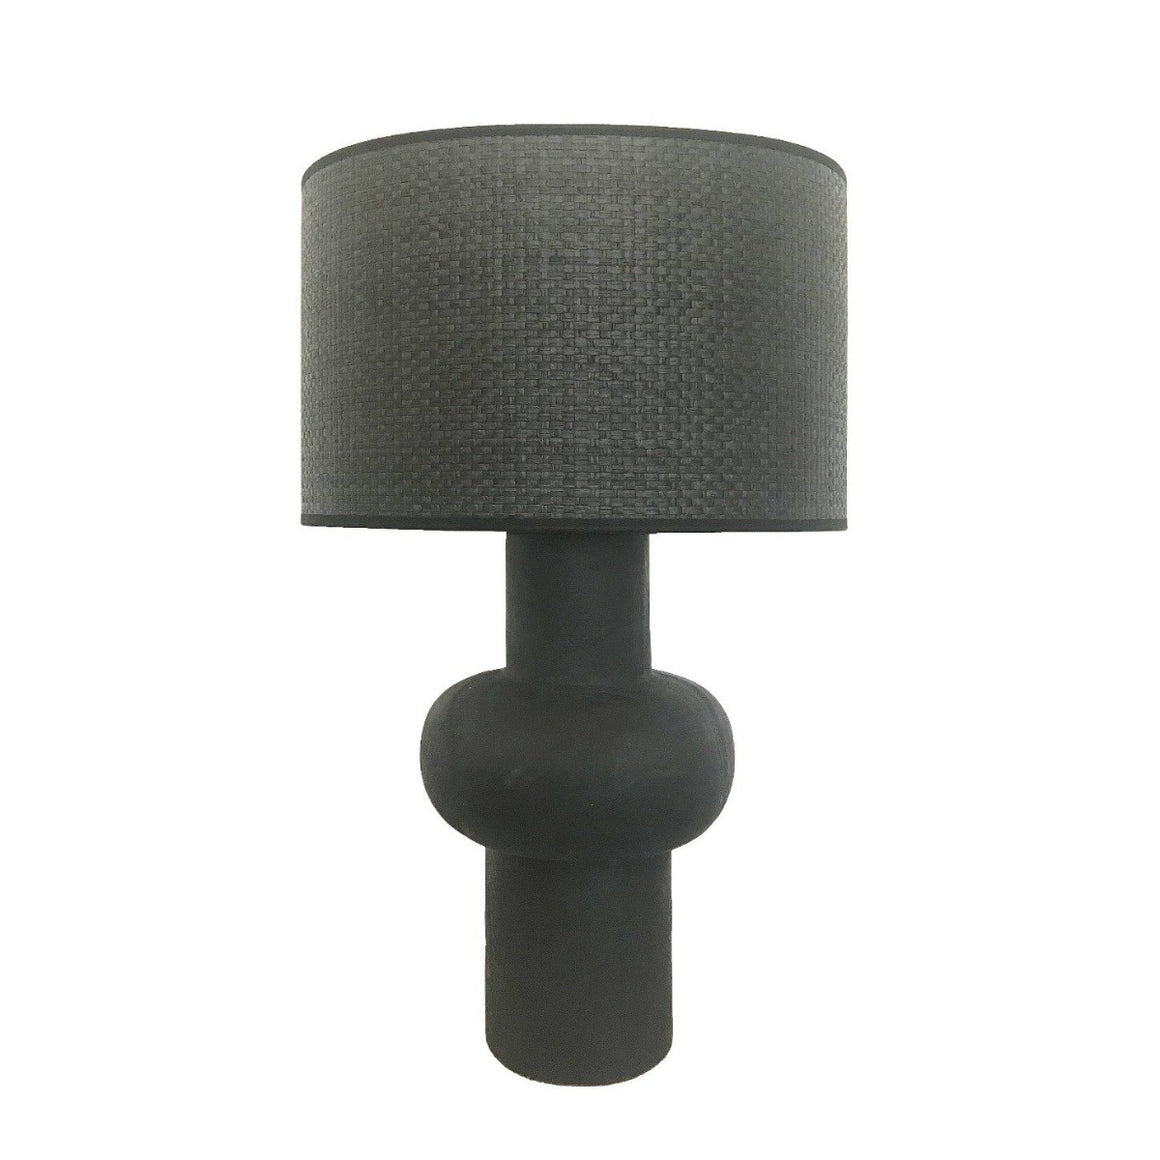 Oliver black wooden table Lamp - Black lighting MRD Home